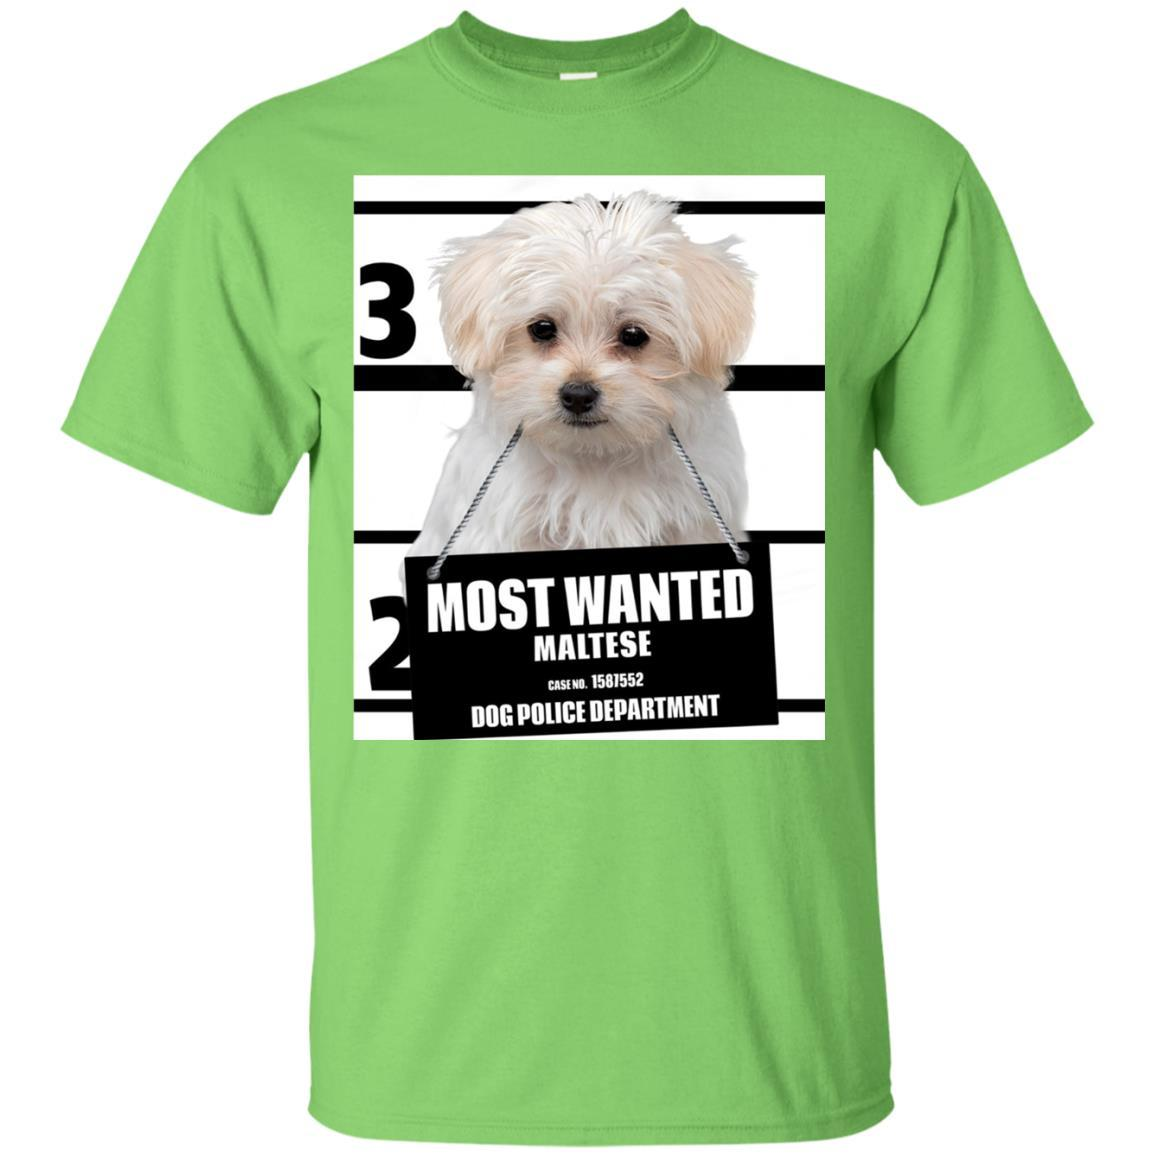 Most Wanted Maltese T-shirt - Dog Tee Shirts - 13